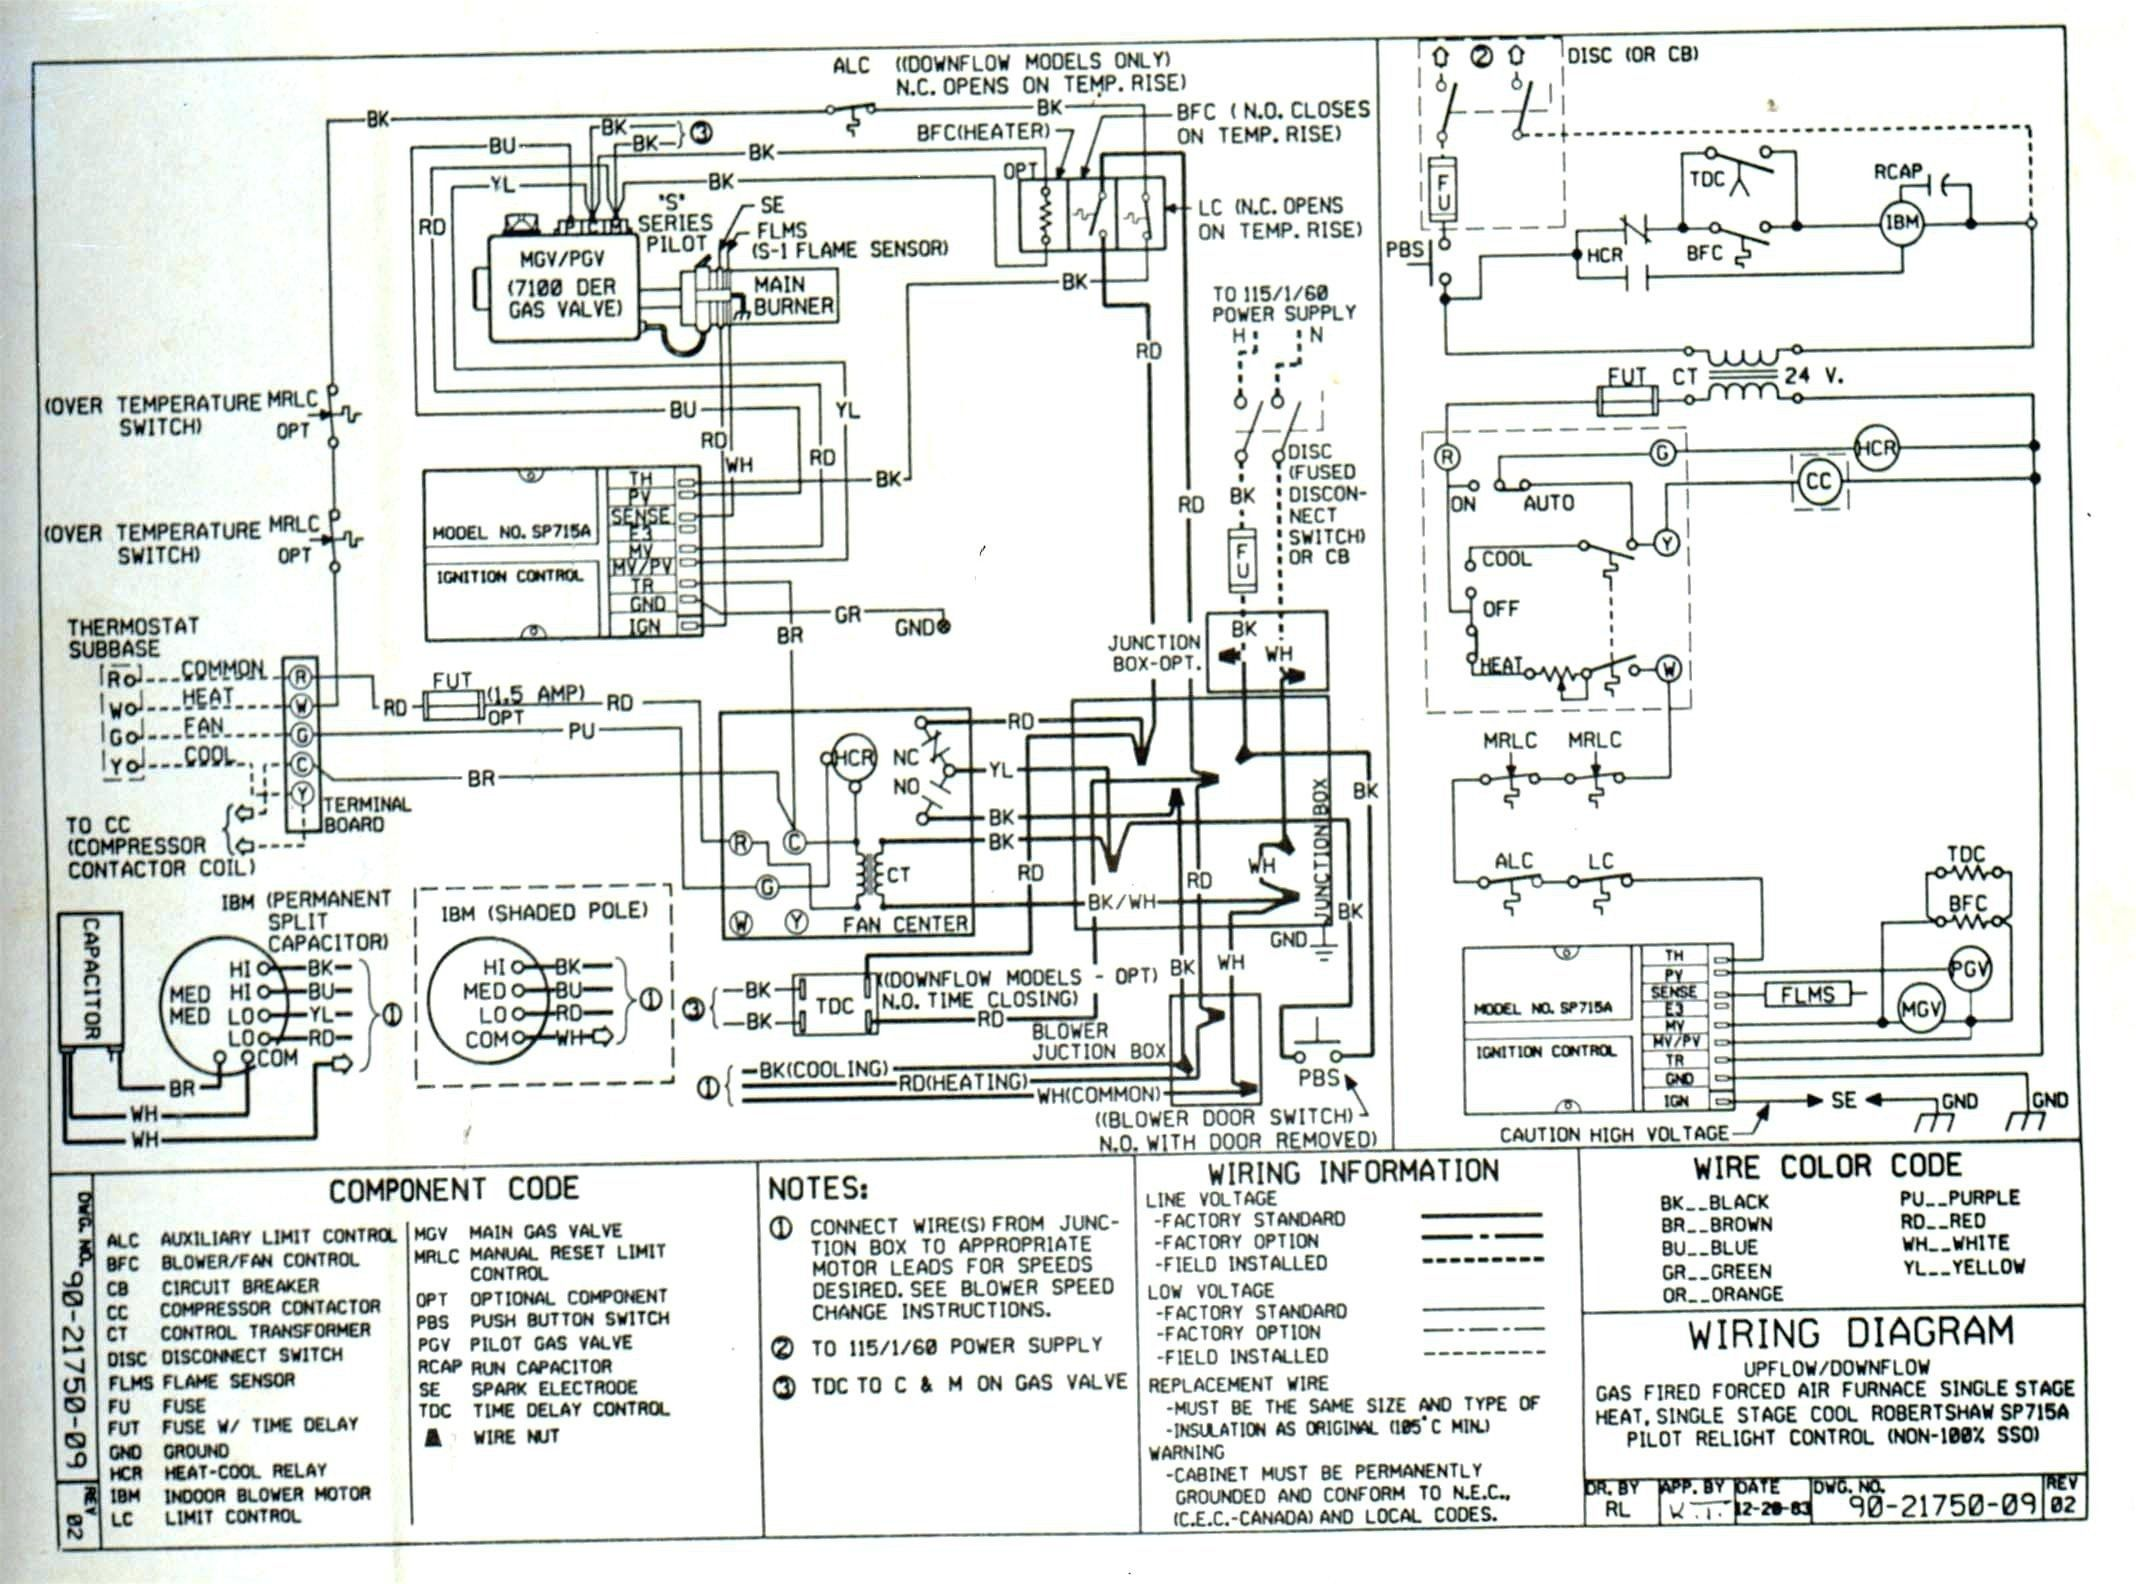 Trane Wiring Diagram - Wiring Diagram Review on